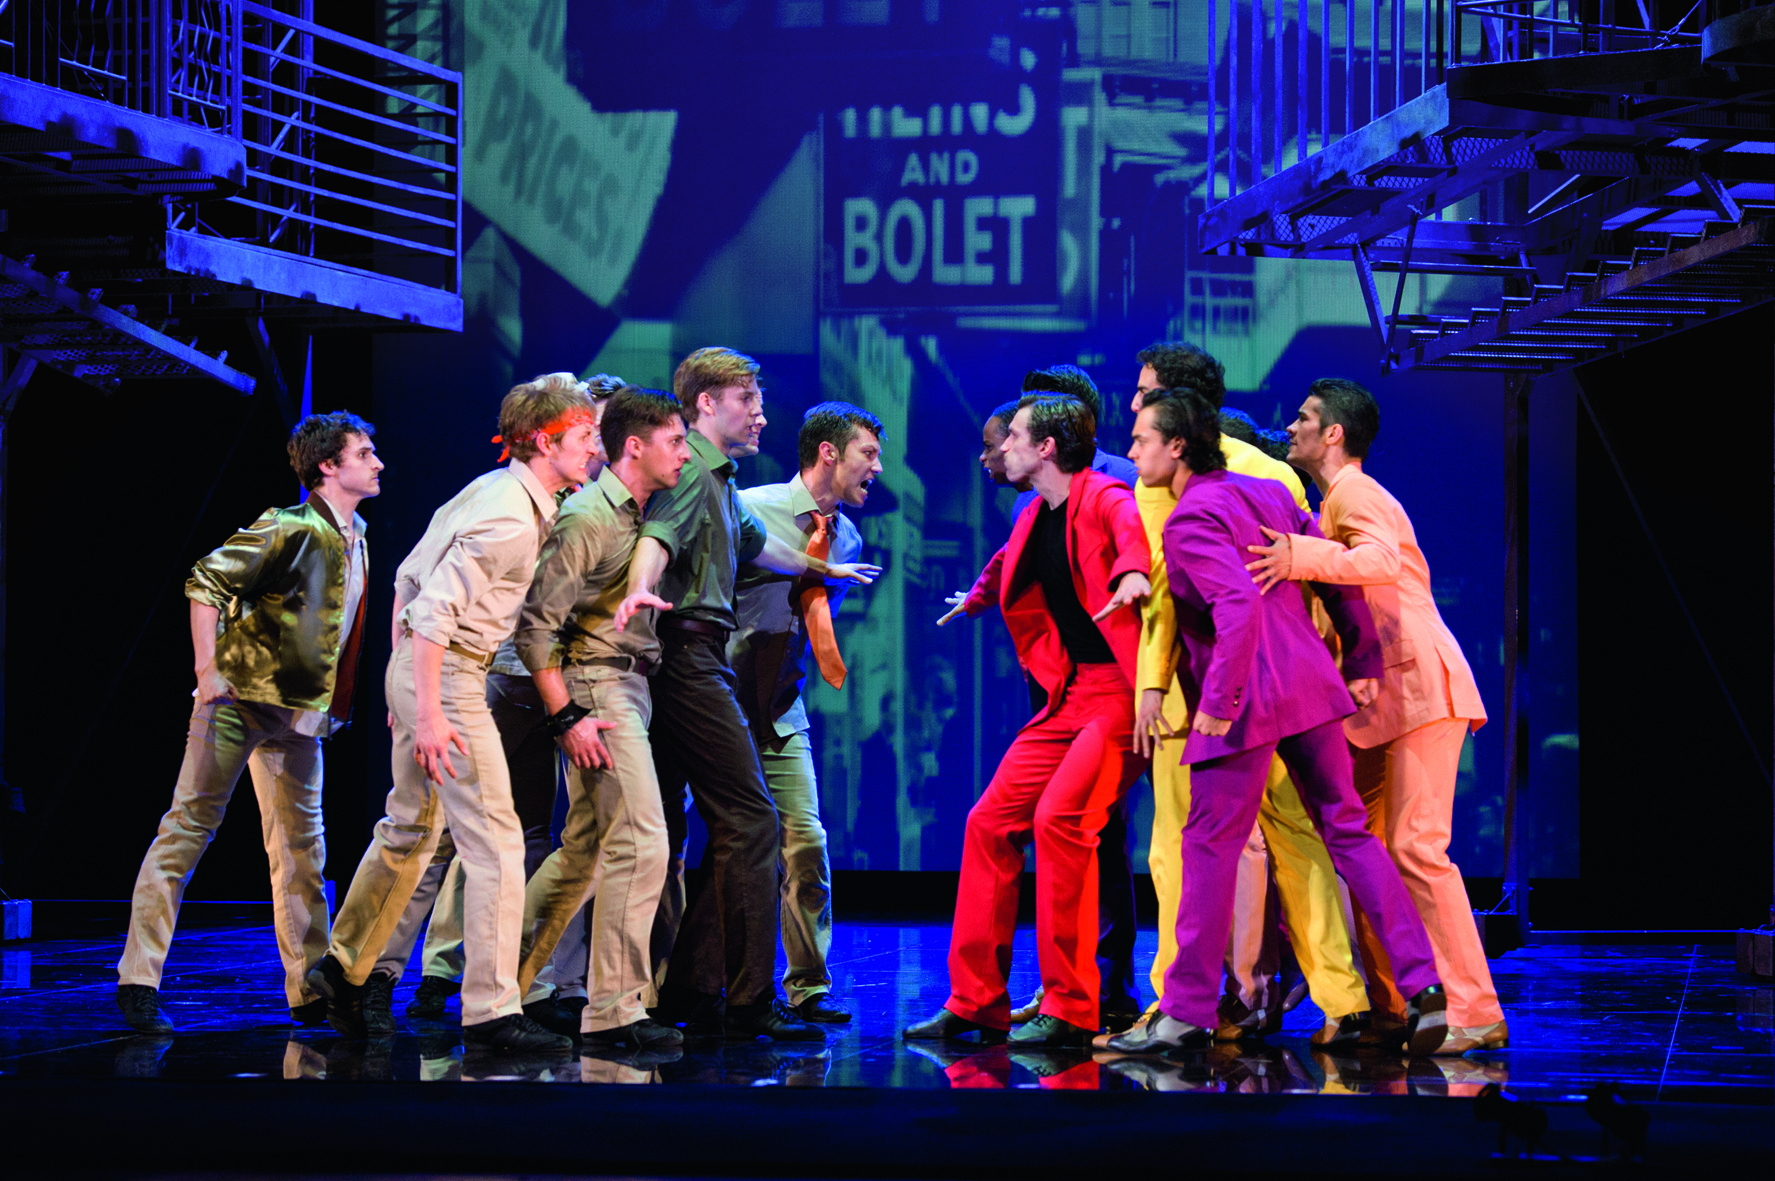 a drama play review of the musical west side story Earlier this season, the media theatre presented shakespeare's classic romeo & juliet now they're concluding their 2016-2017 season with a production of west side story, the musical that put .